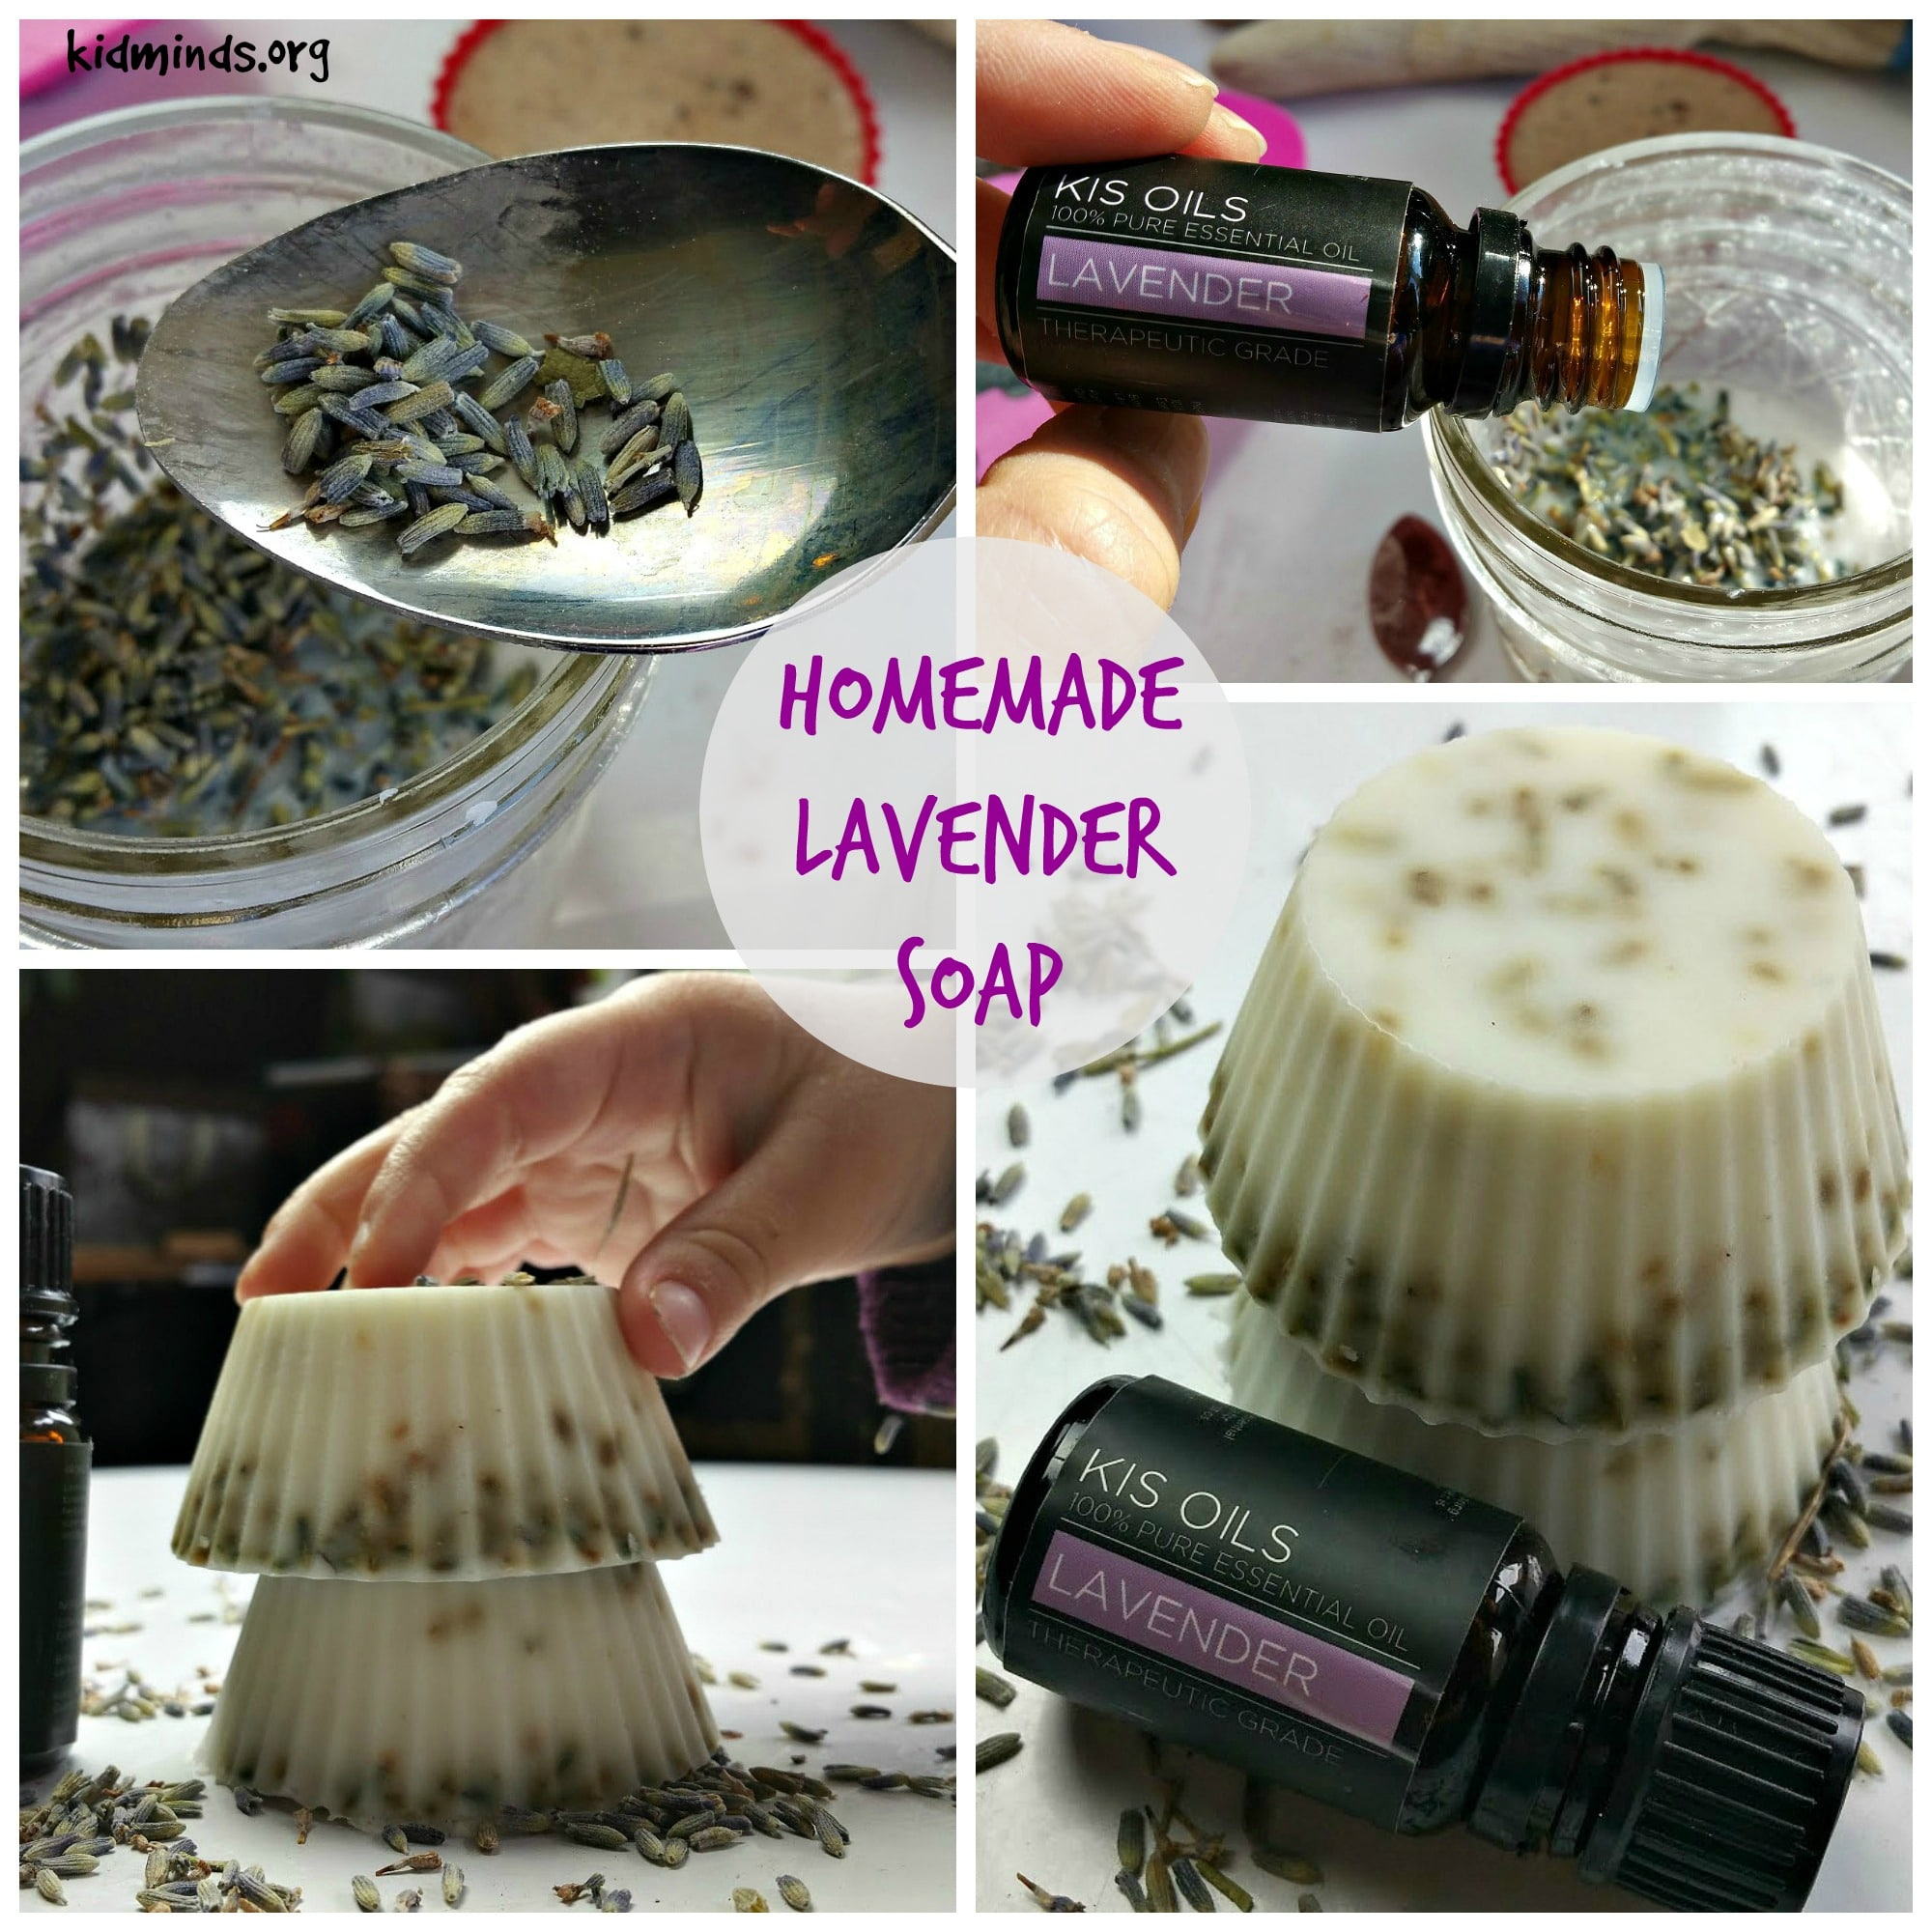 Homemade soap the easy way: Lavender Soap